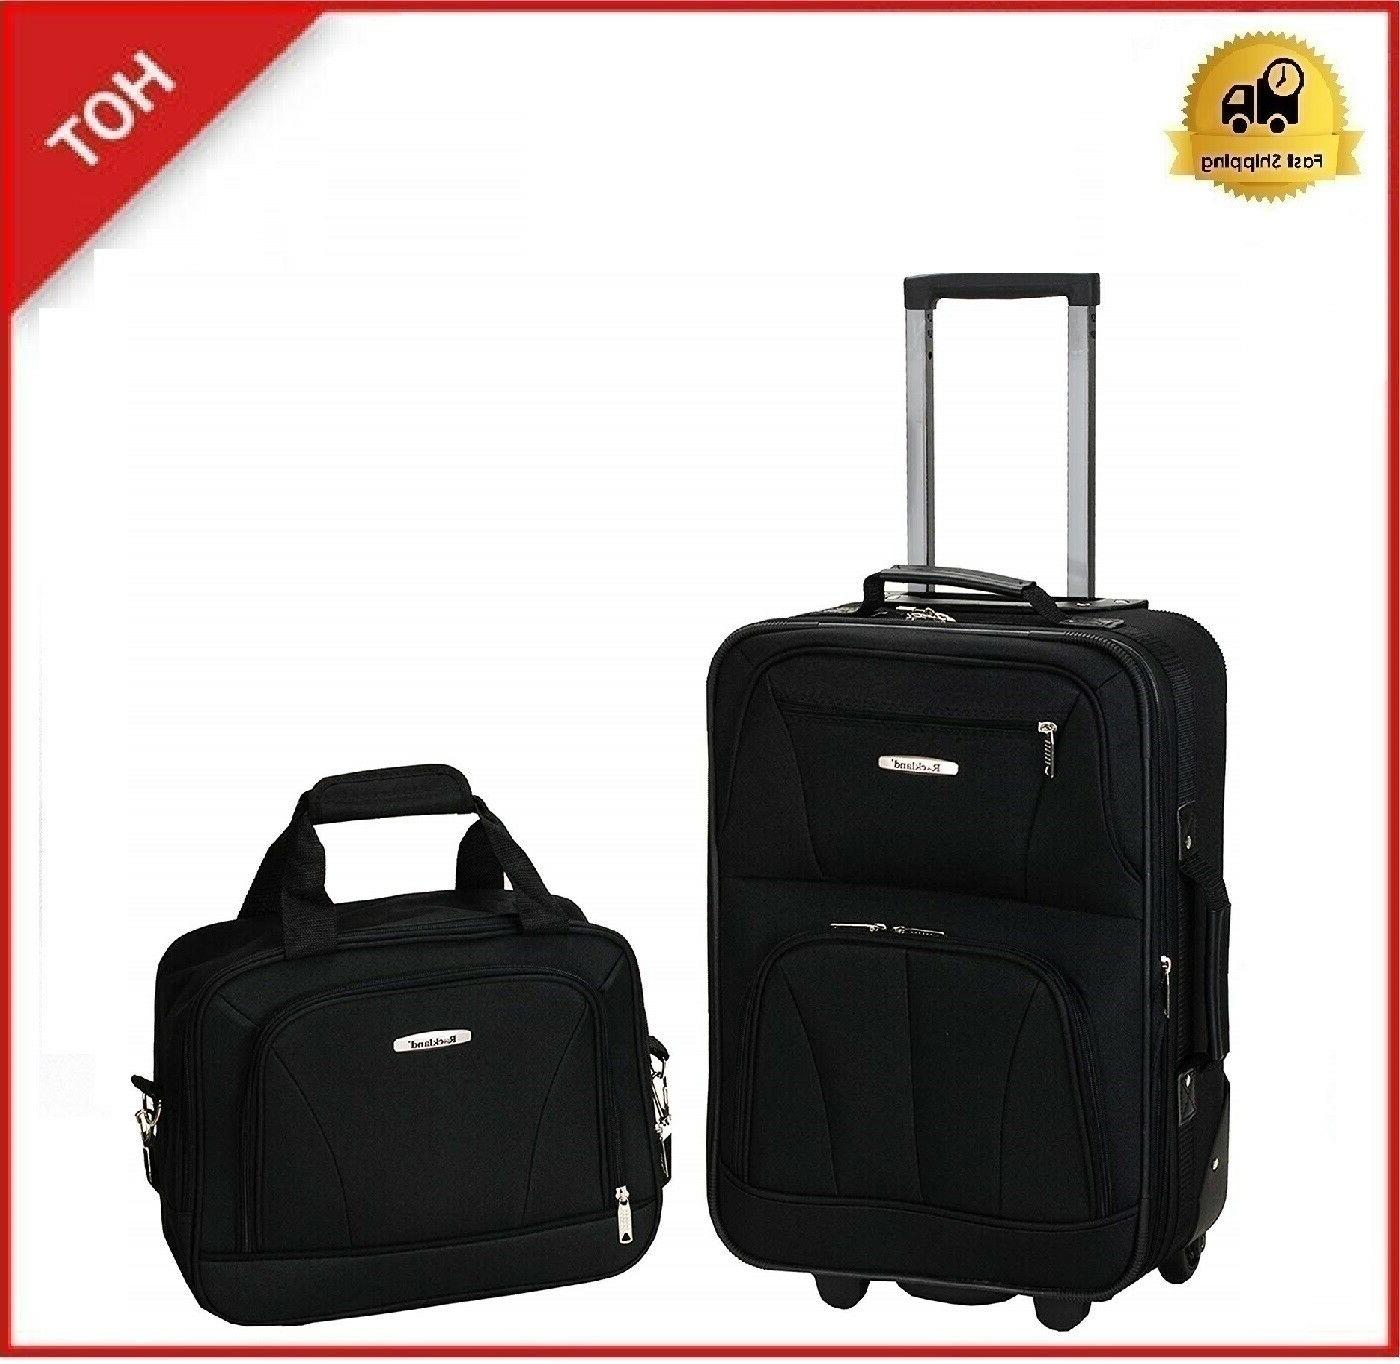 2 pcs traveler carry on rolling luggage